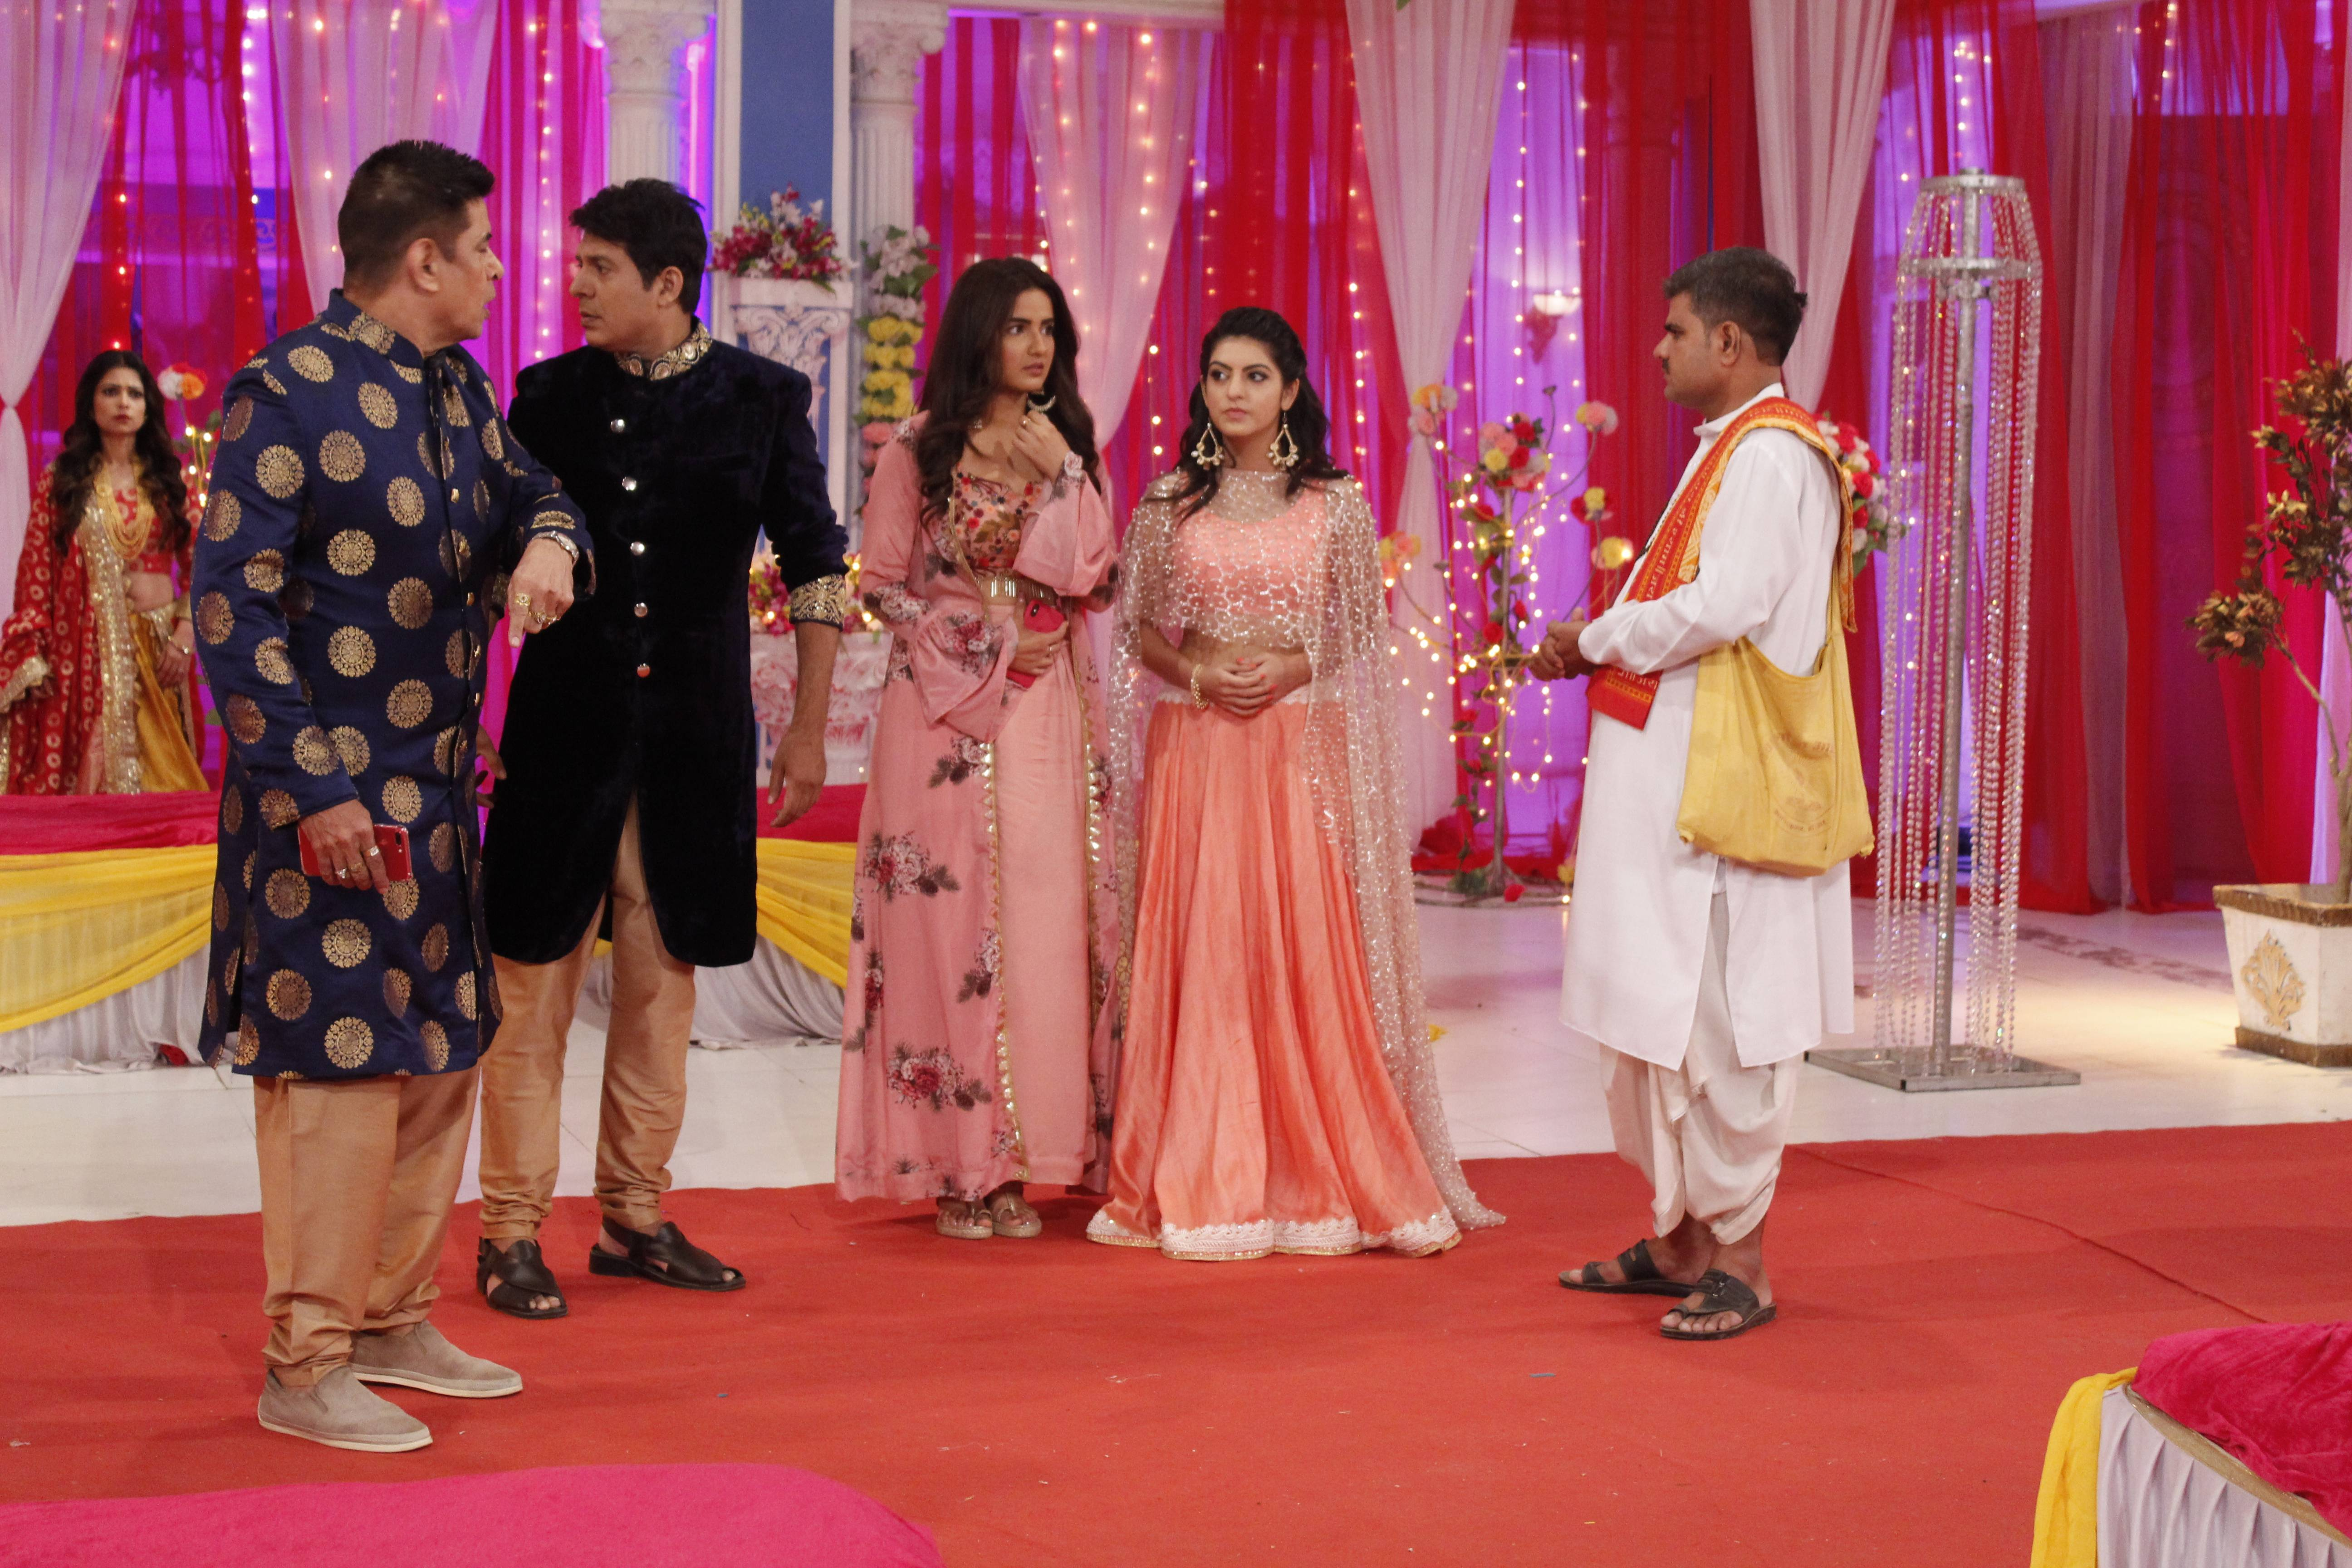 Sneak Peek into 'Band Baja Baraati' special episode.